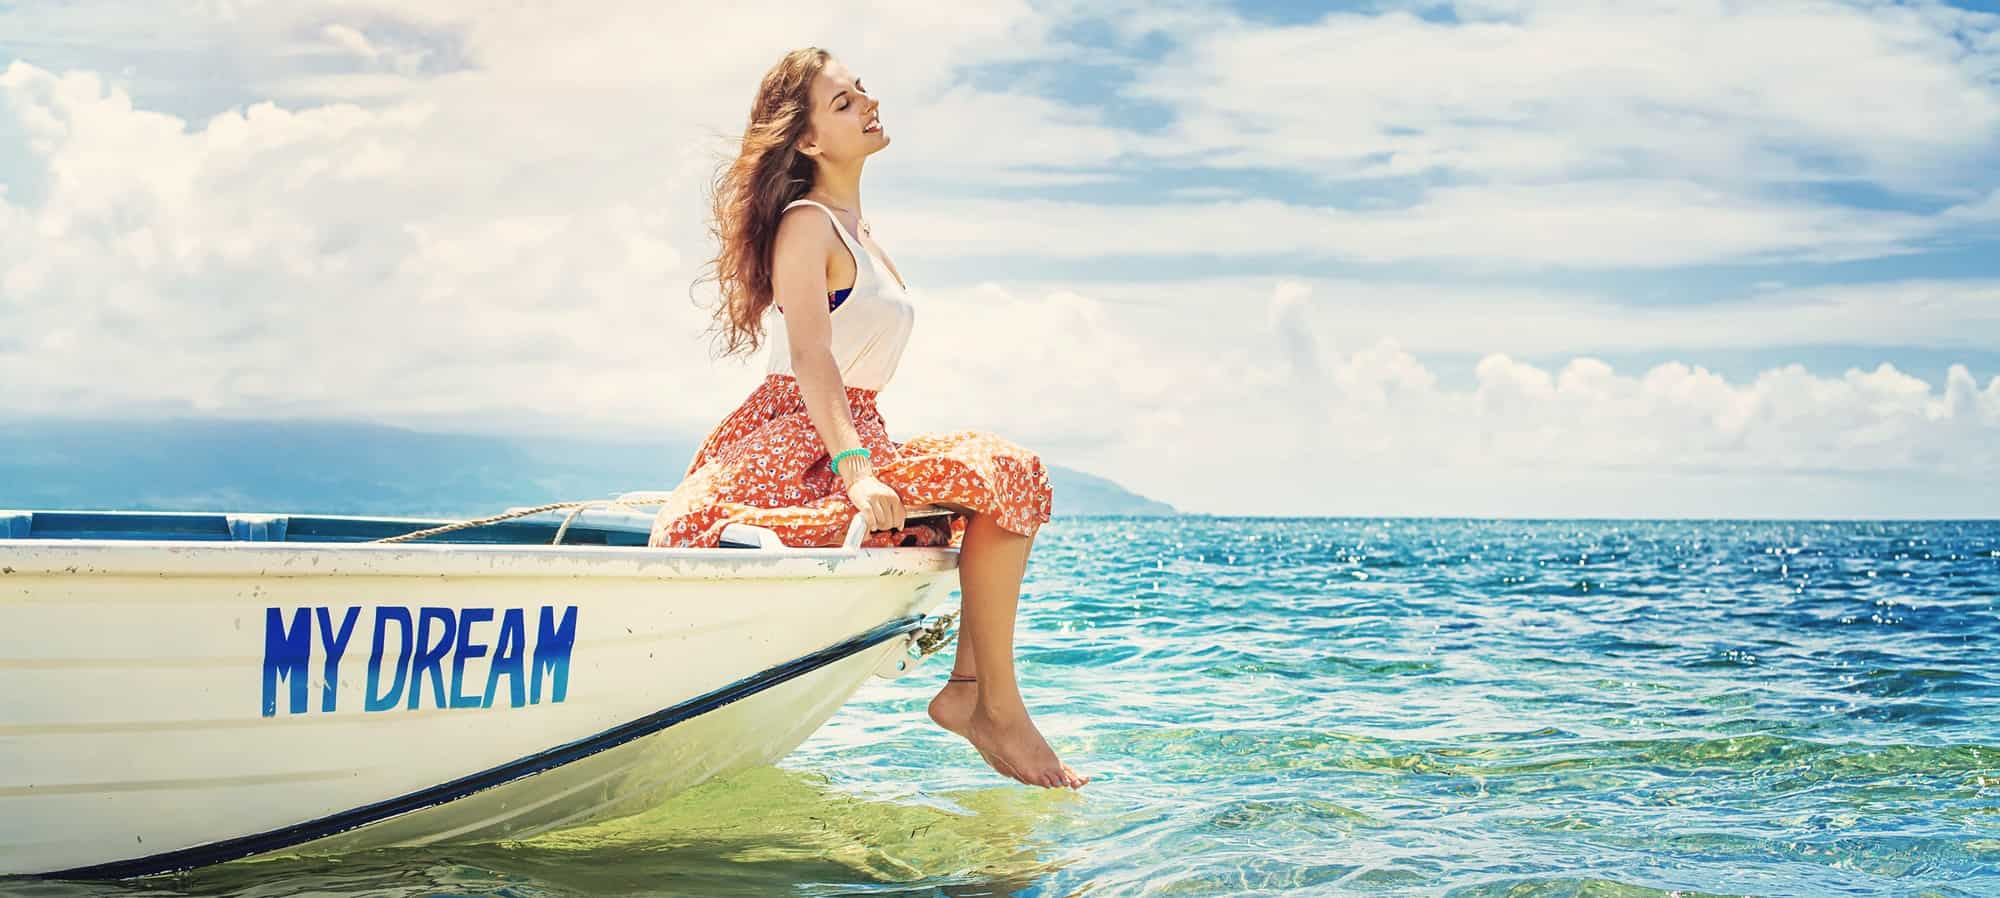 "woman sitting on edge of boat named ""MY DREAM"" representing goal setting and dreaming of the future"